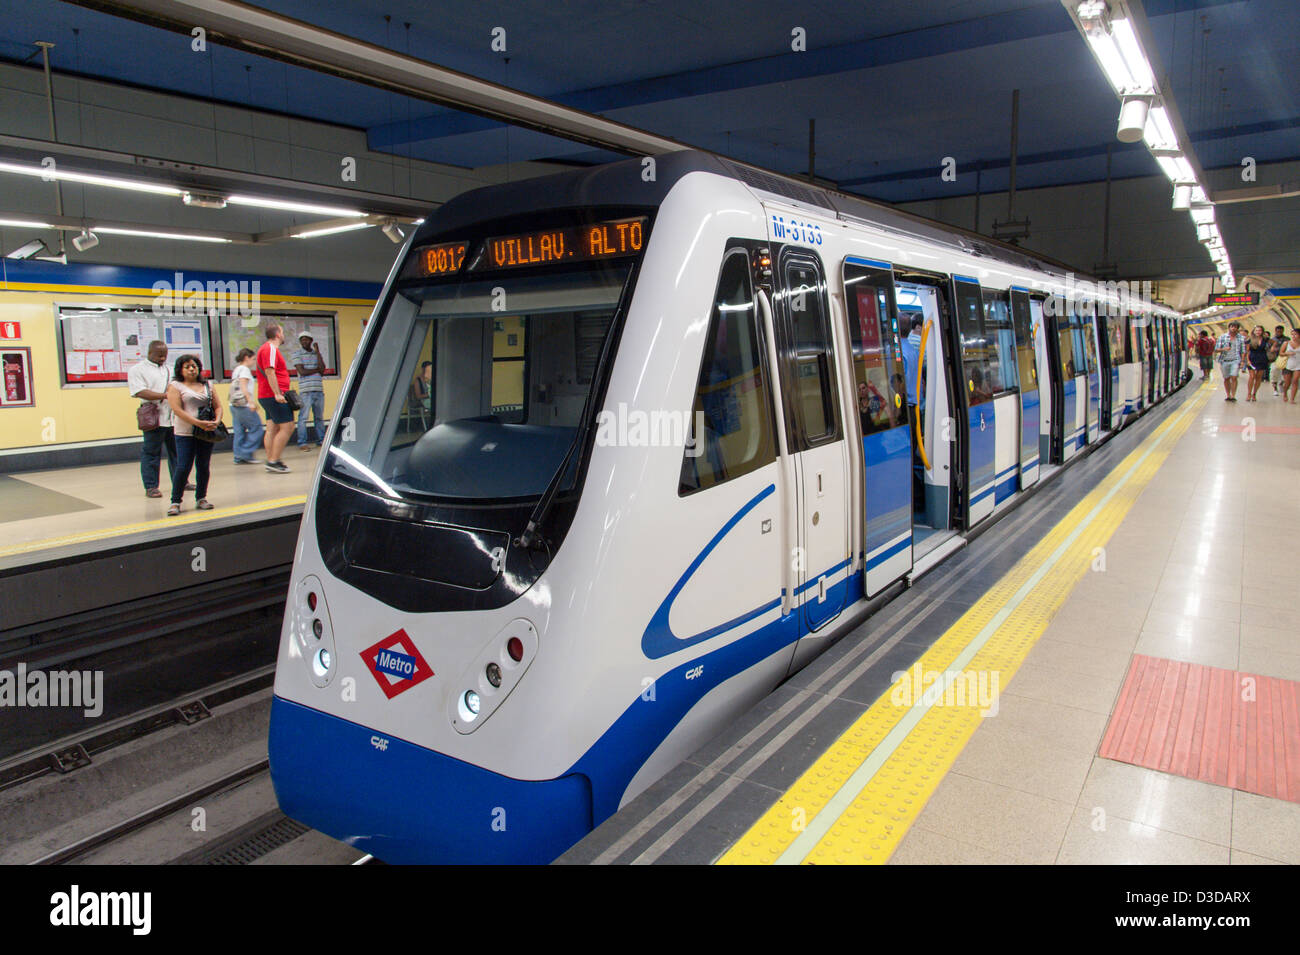 Train at metro station platform, Madrid, Spain - Stock Image